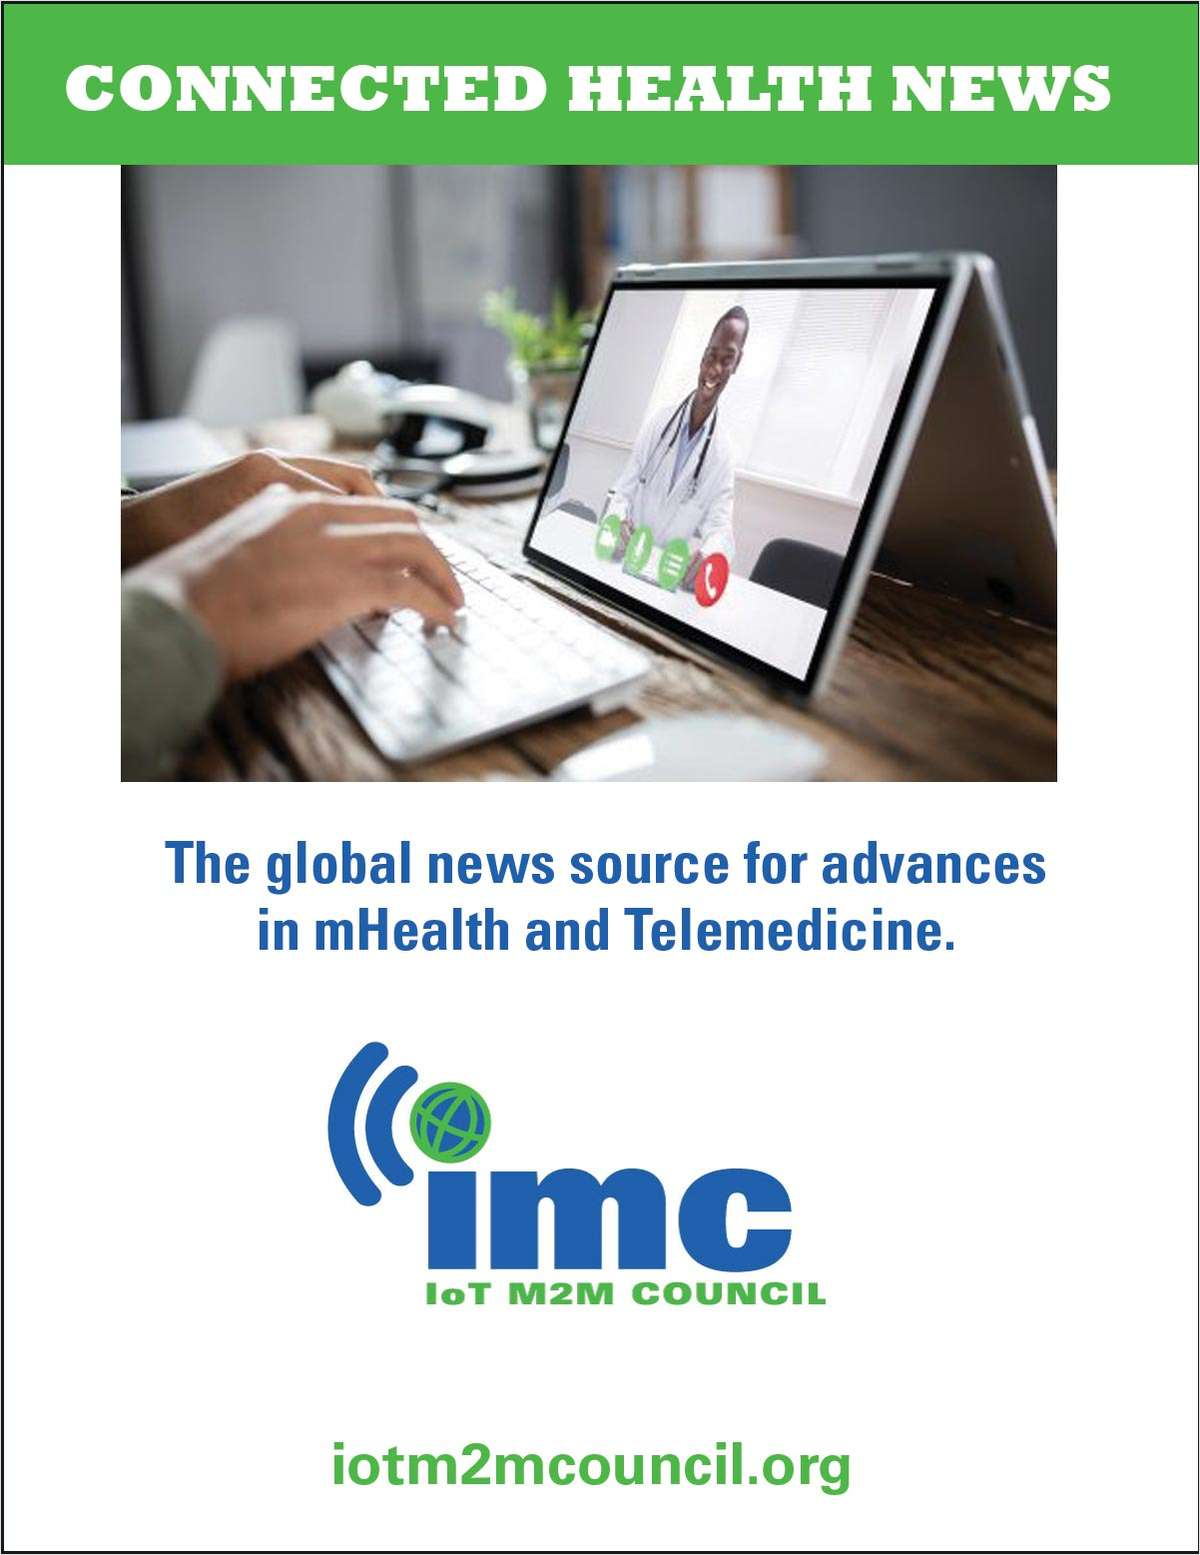 CONNECTED HEALTH NEWS